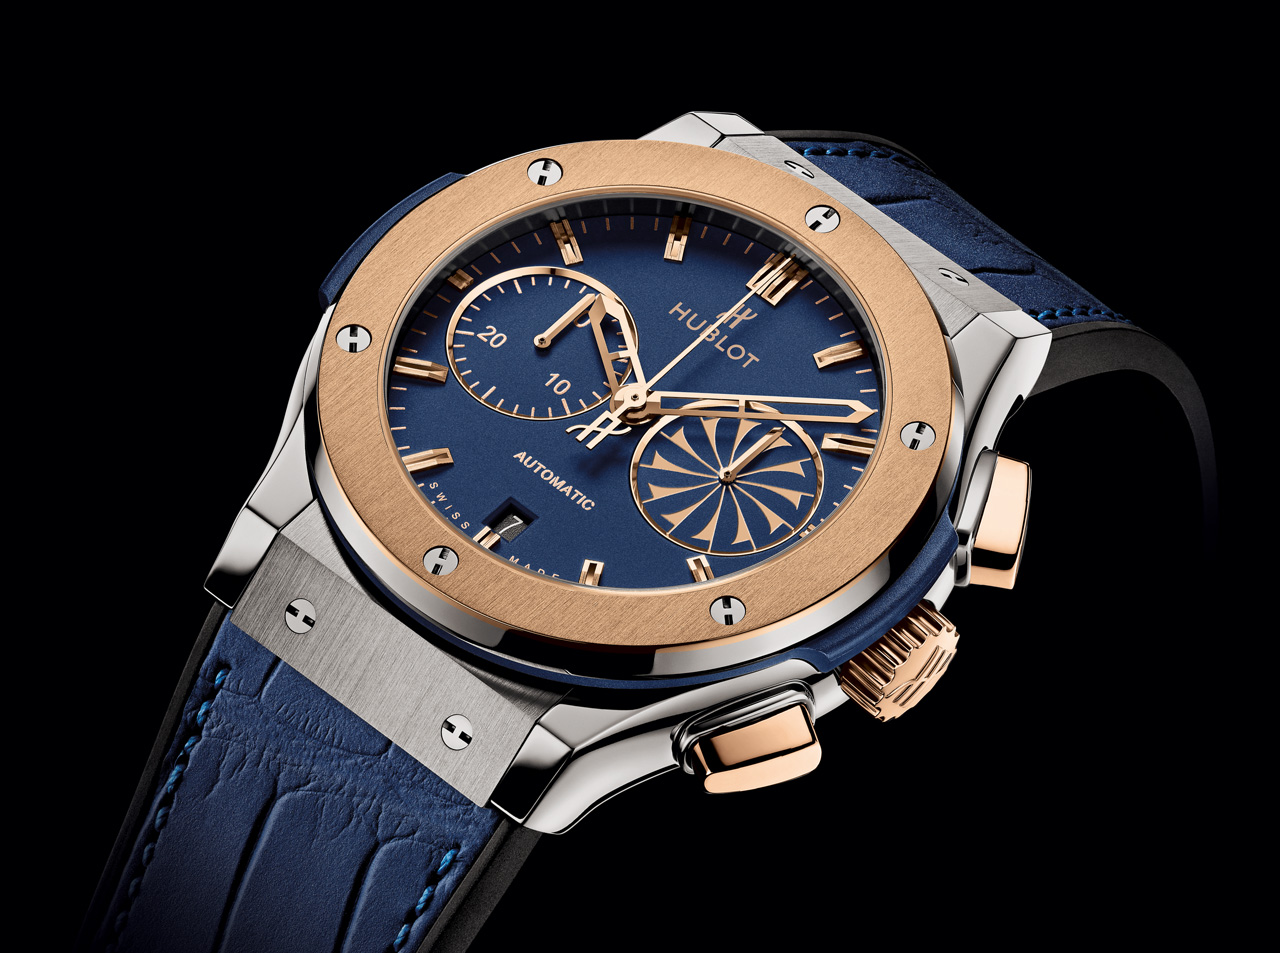 hublot luxury watch